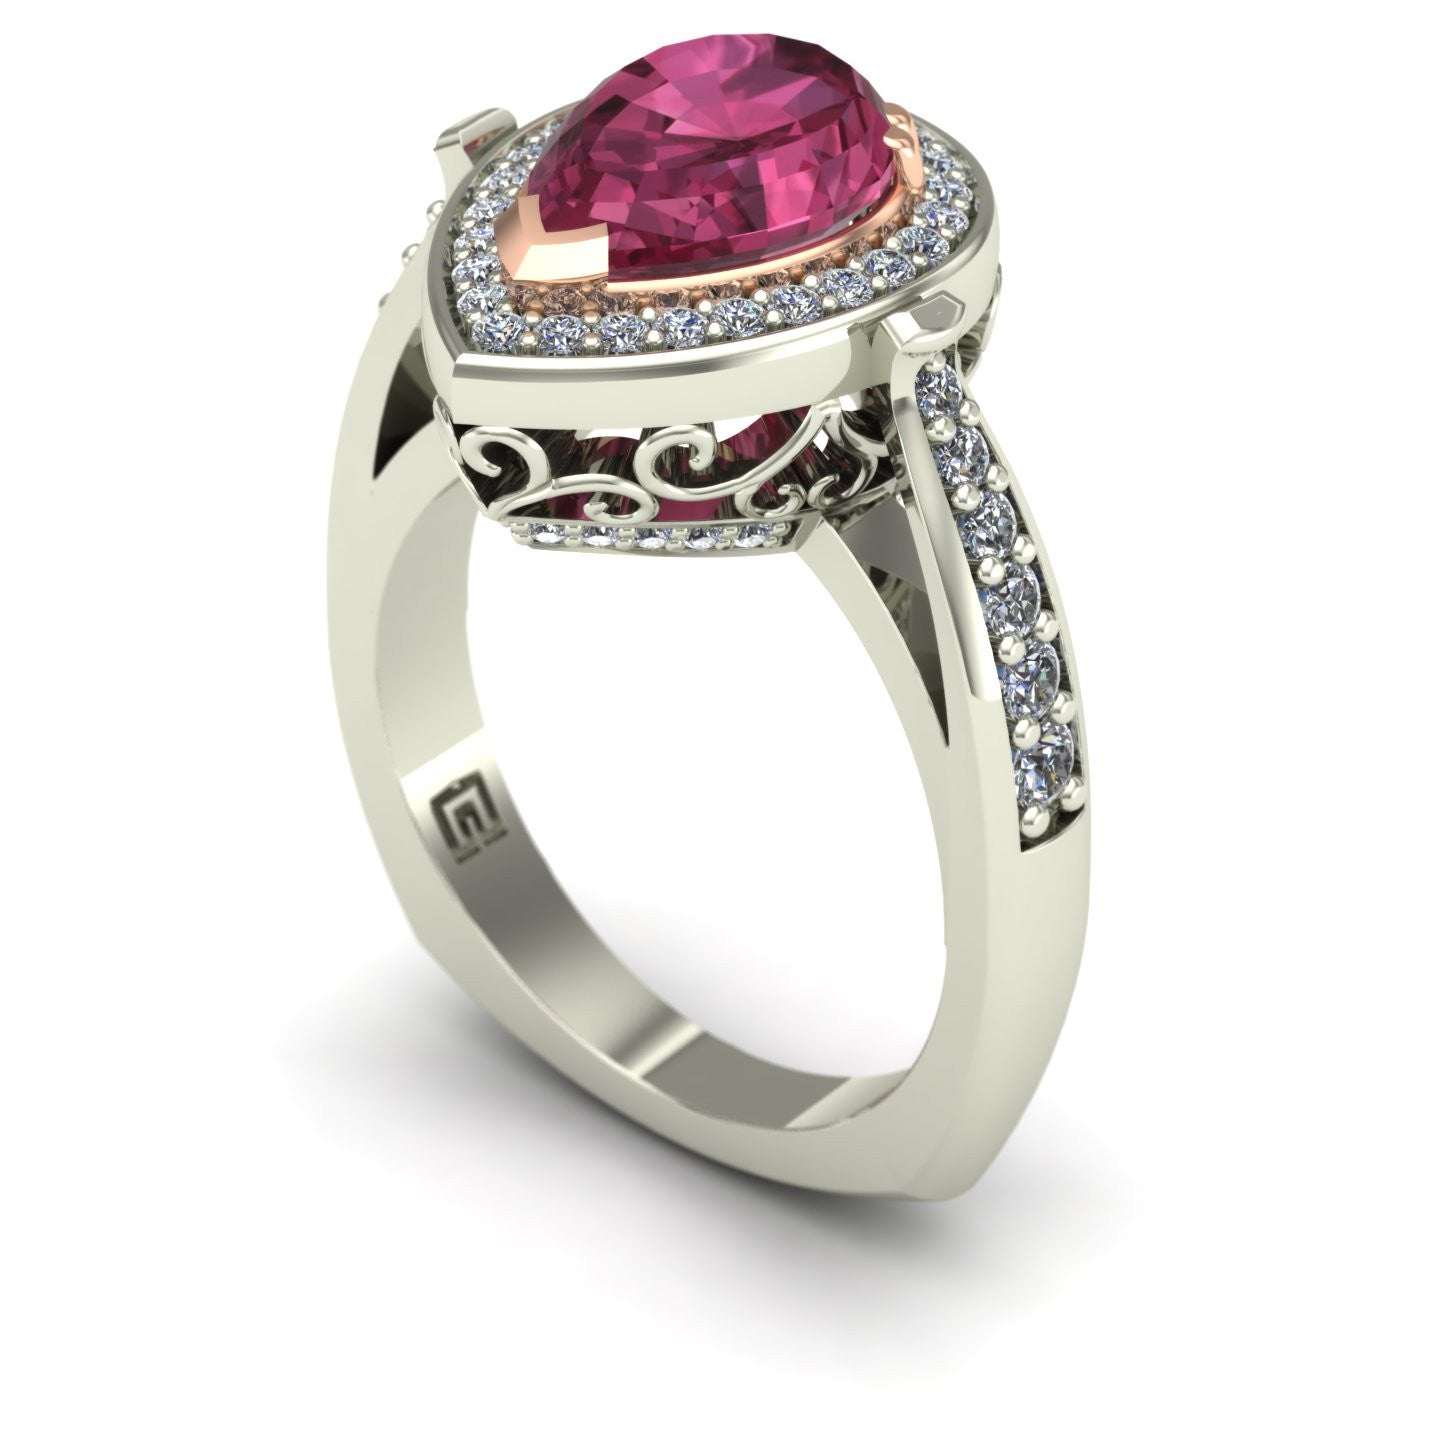 Pink tourmaline and diamond pear scroll ring in 14k rose and white gold